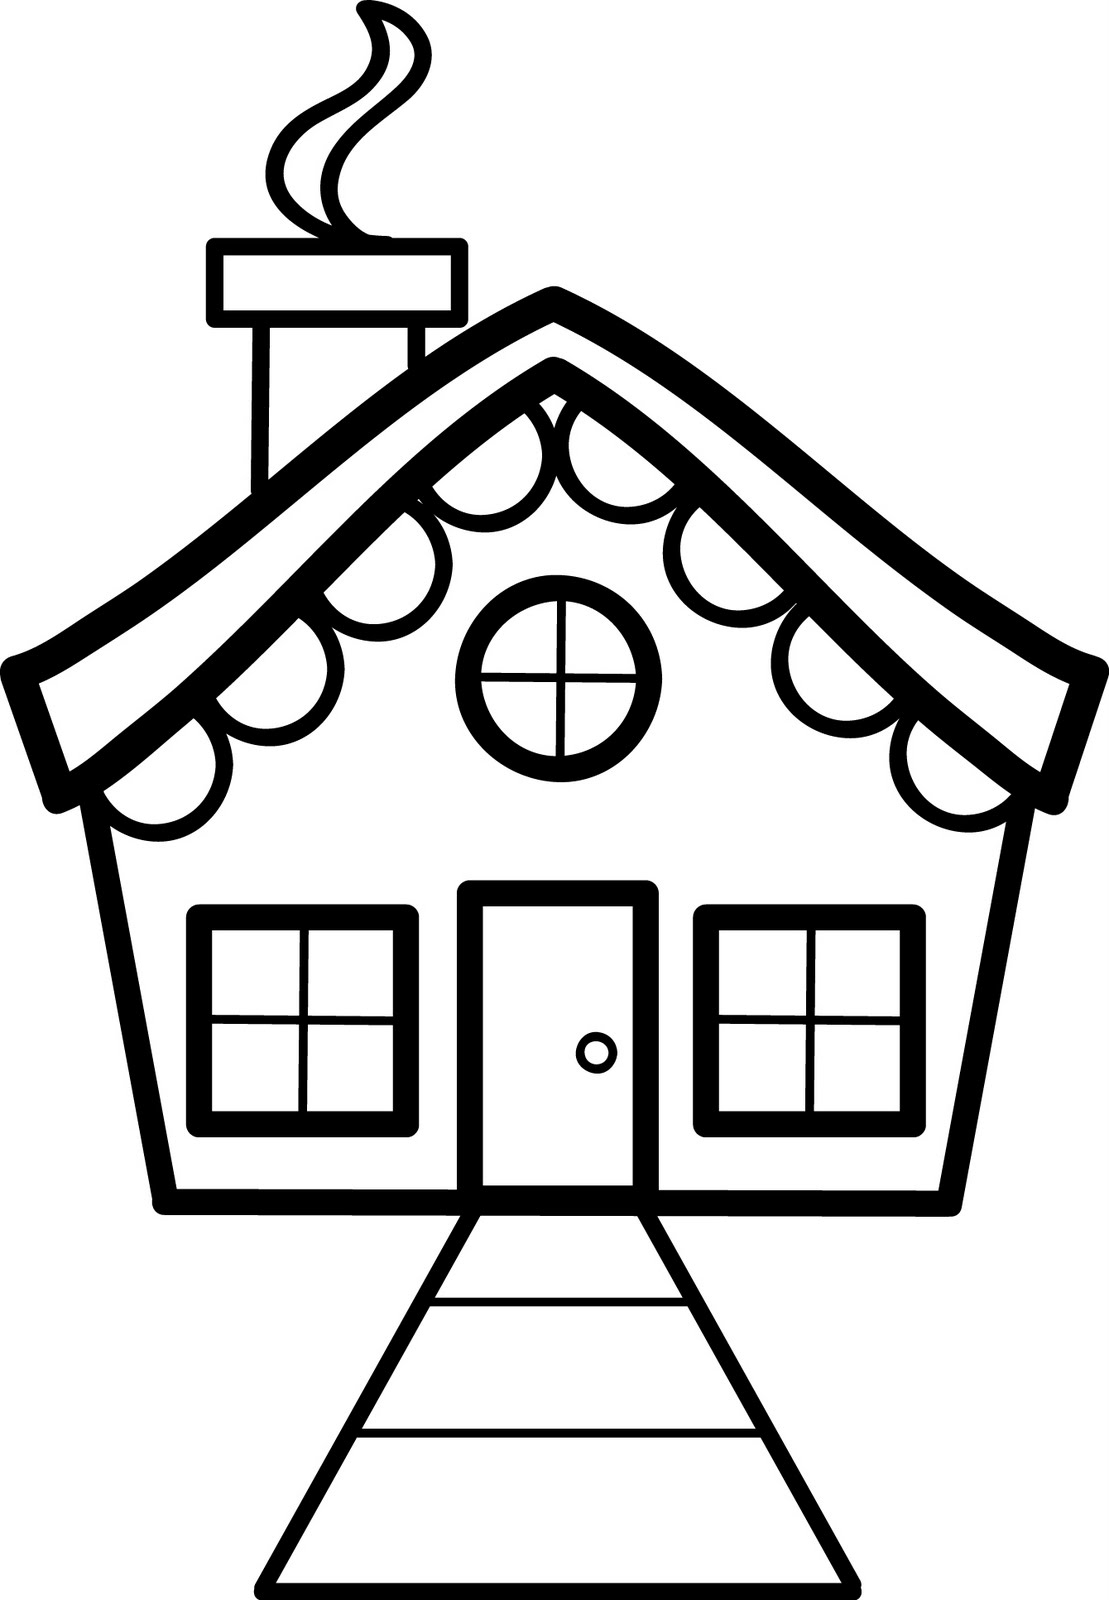 coloring pages house - simple house coloring pages